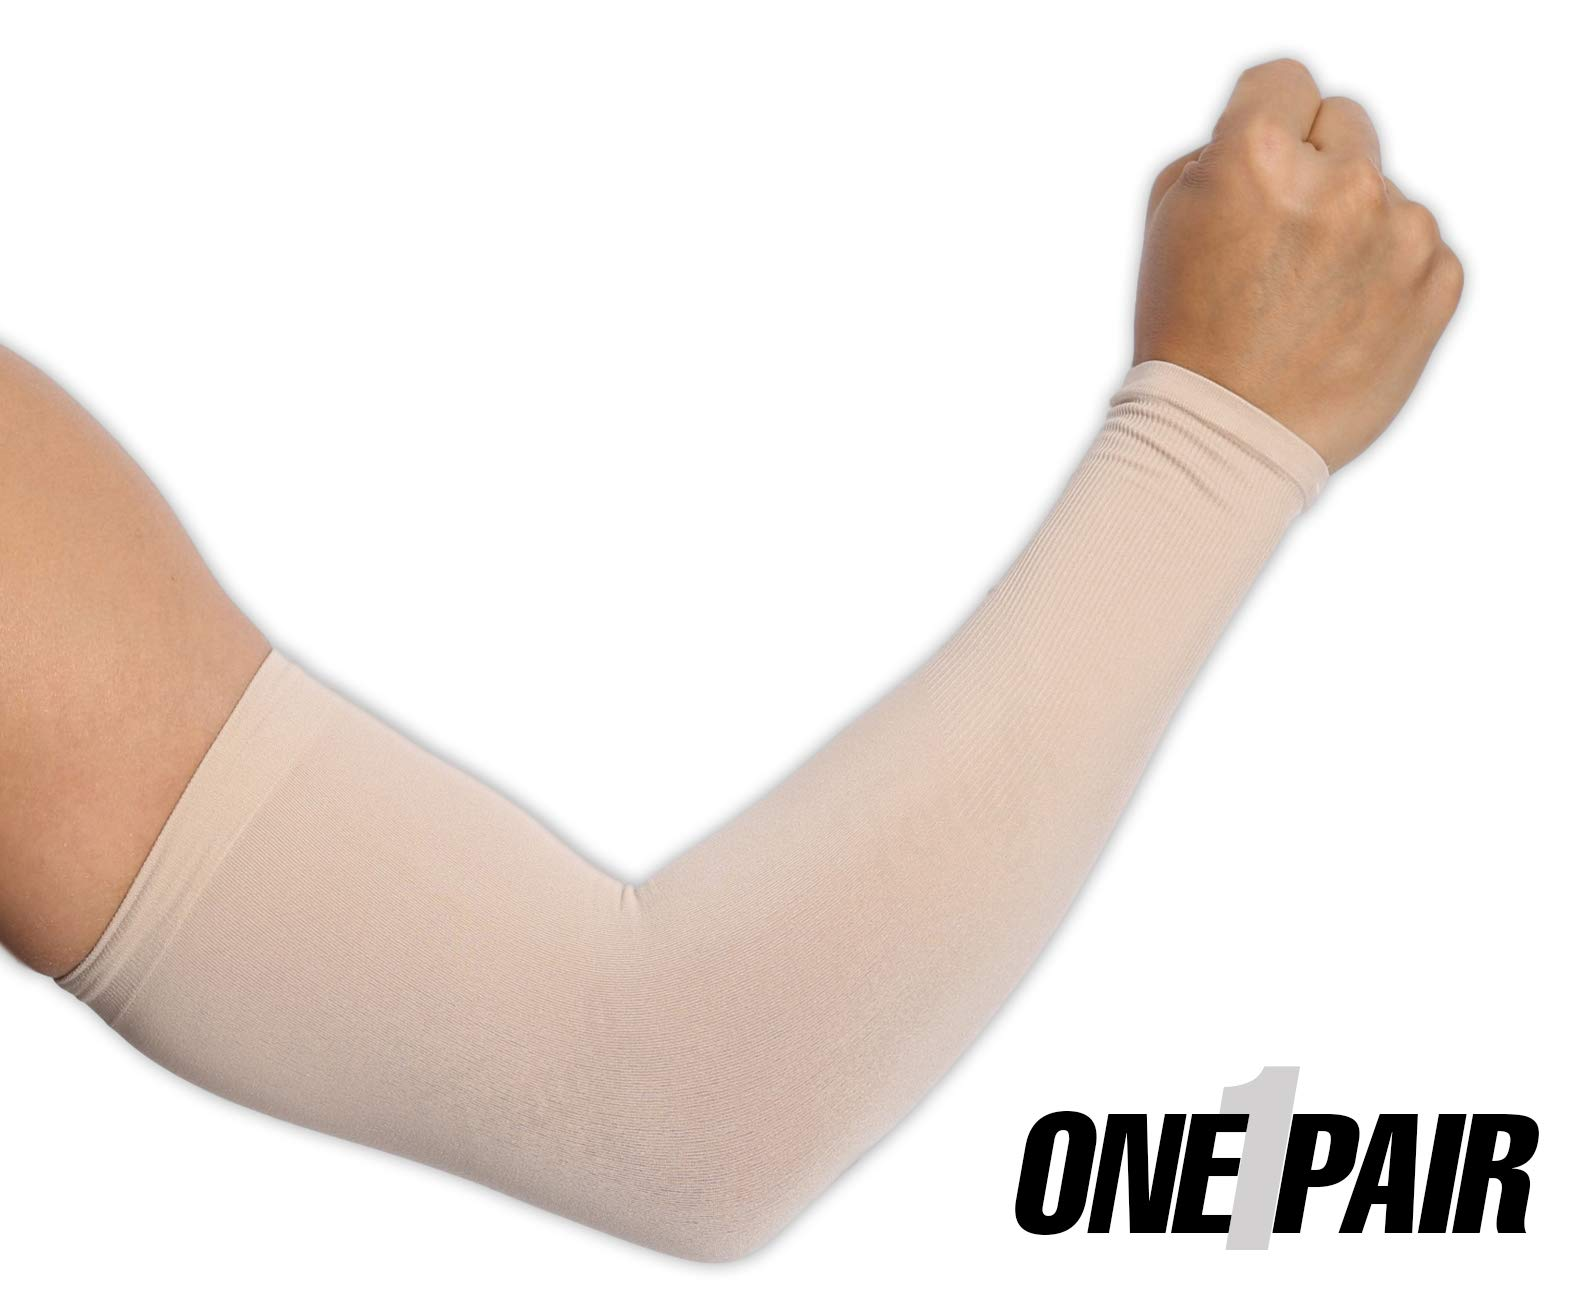 UV Protection Cooling Arm Sleeves - UPF 50 Long Sun Sleeves for Men & Women. Perfect for Cycling, Driving, Running, Basketball, Football & Outdoor Activities. (Light Beige)